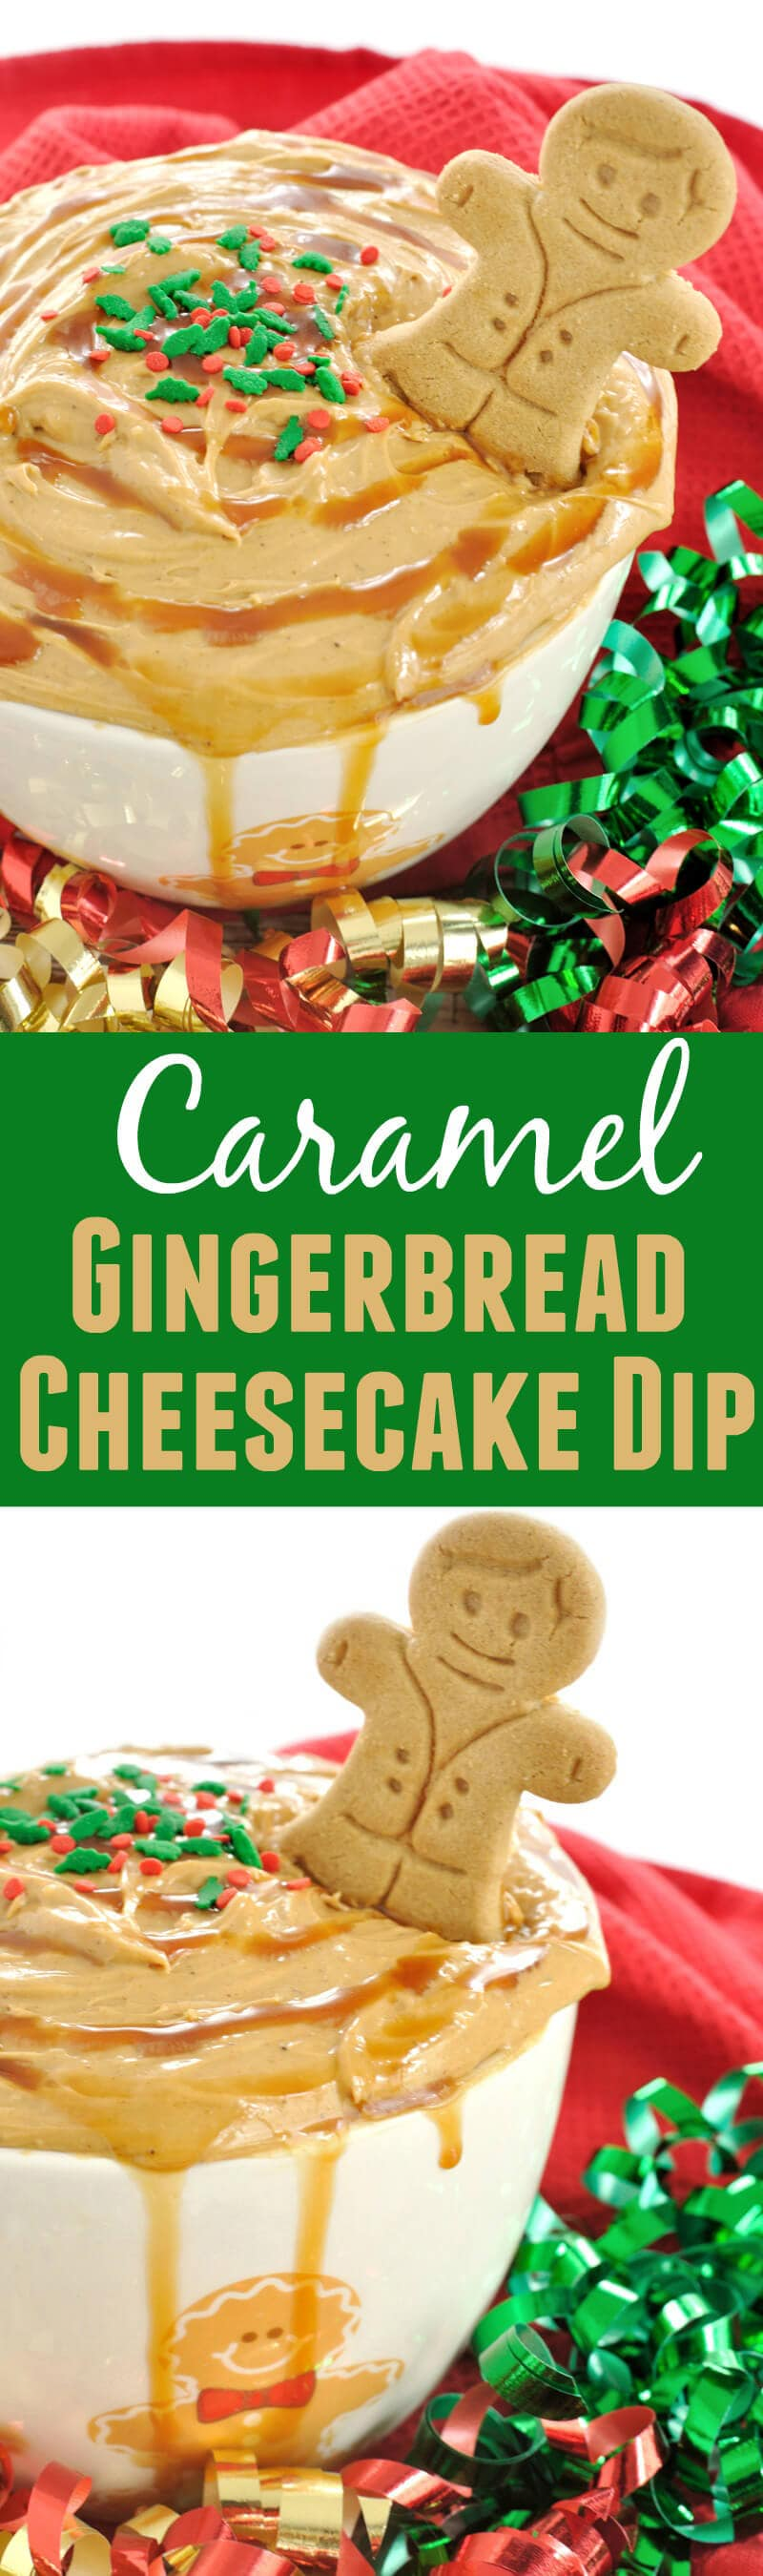 caramel-gingerbread-cheesecake-dip-collage